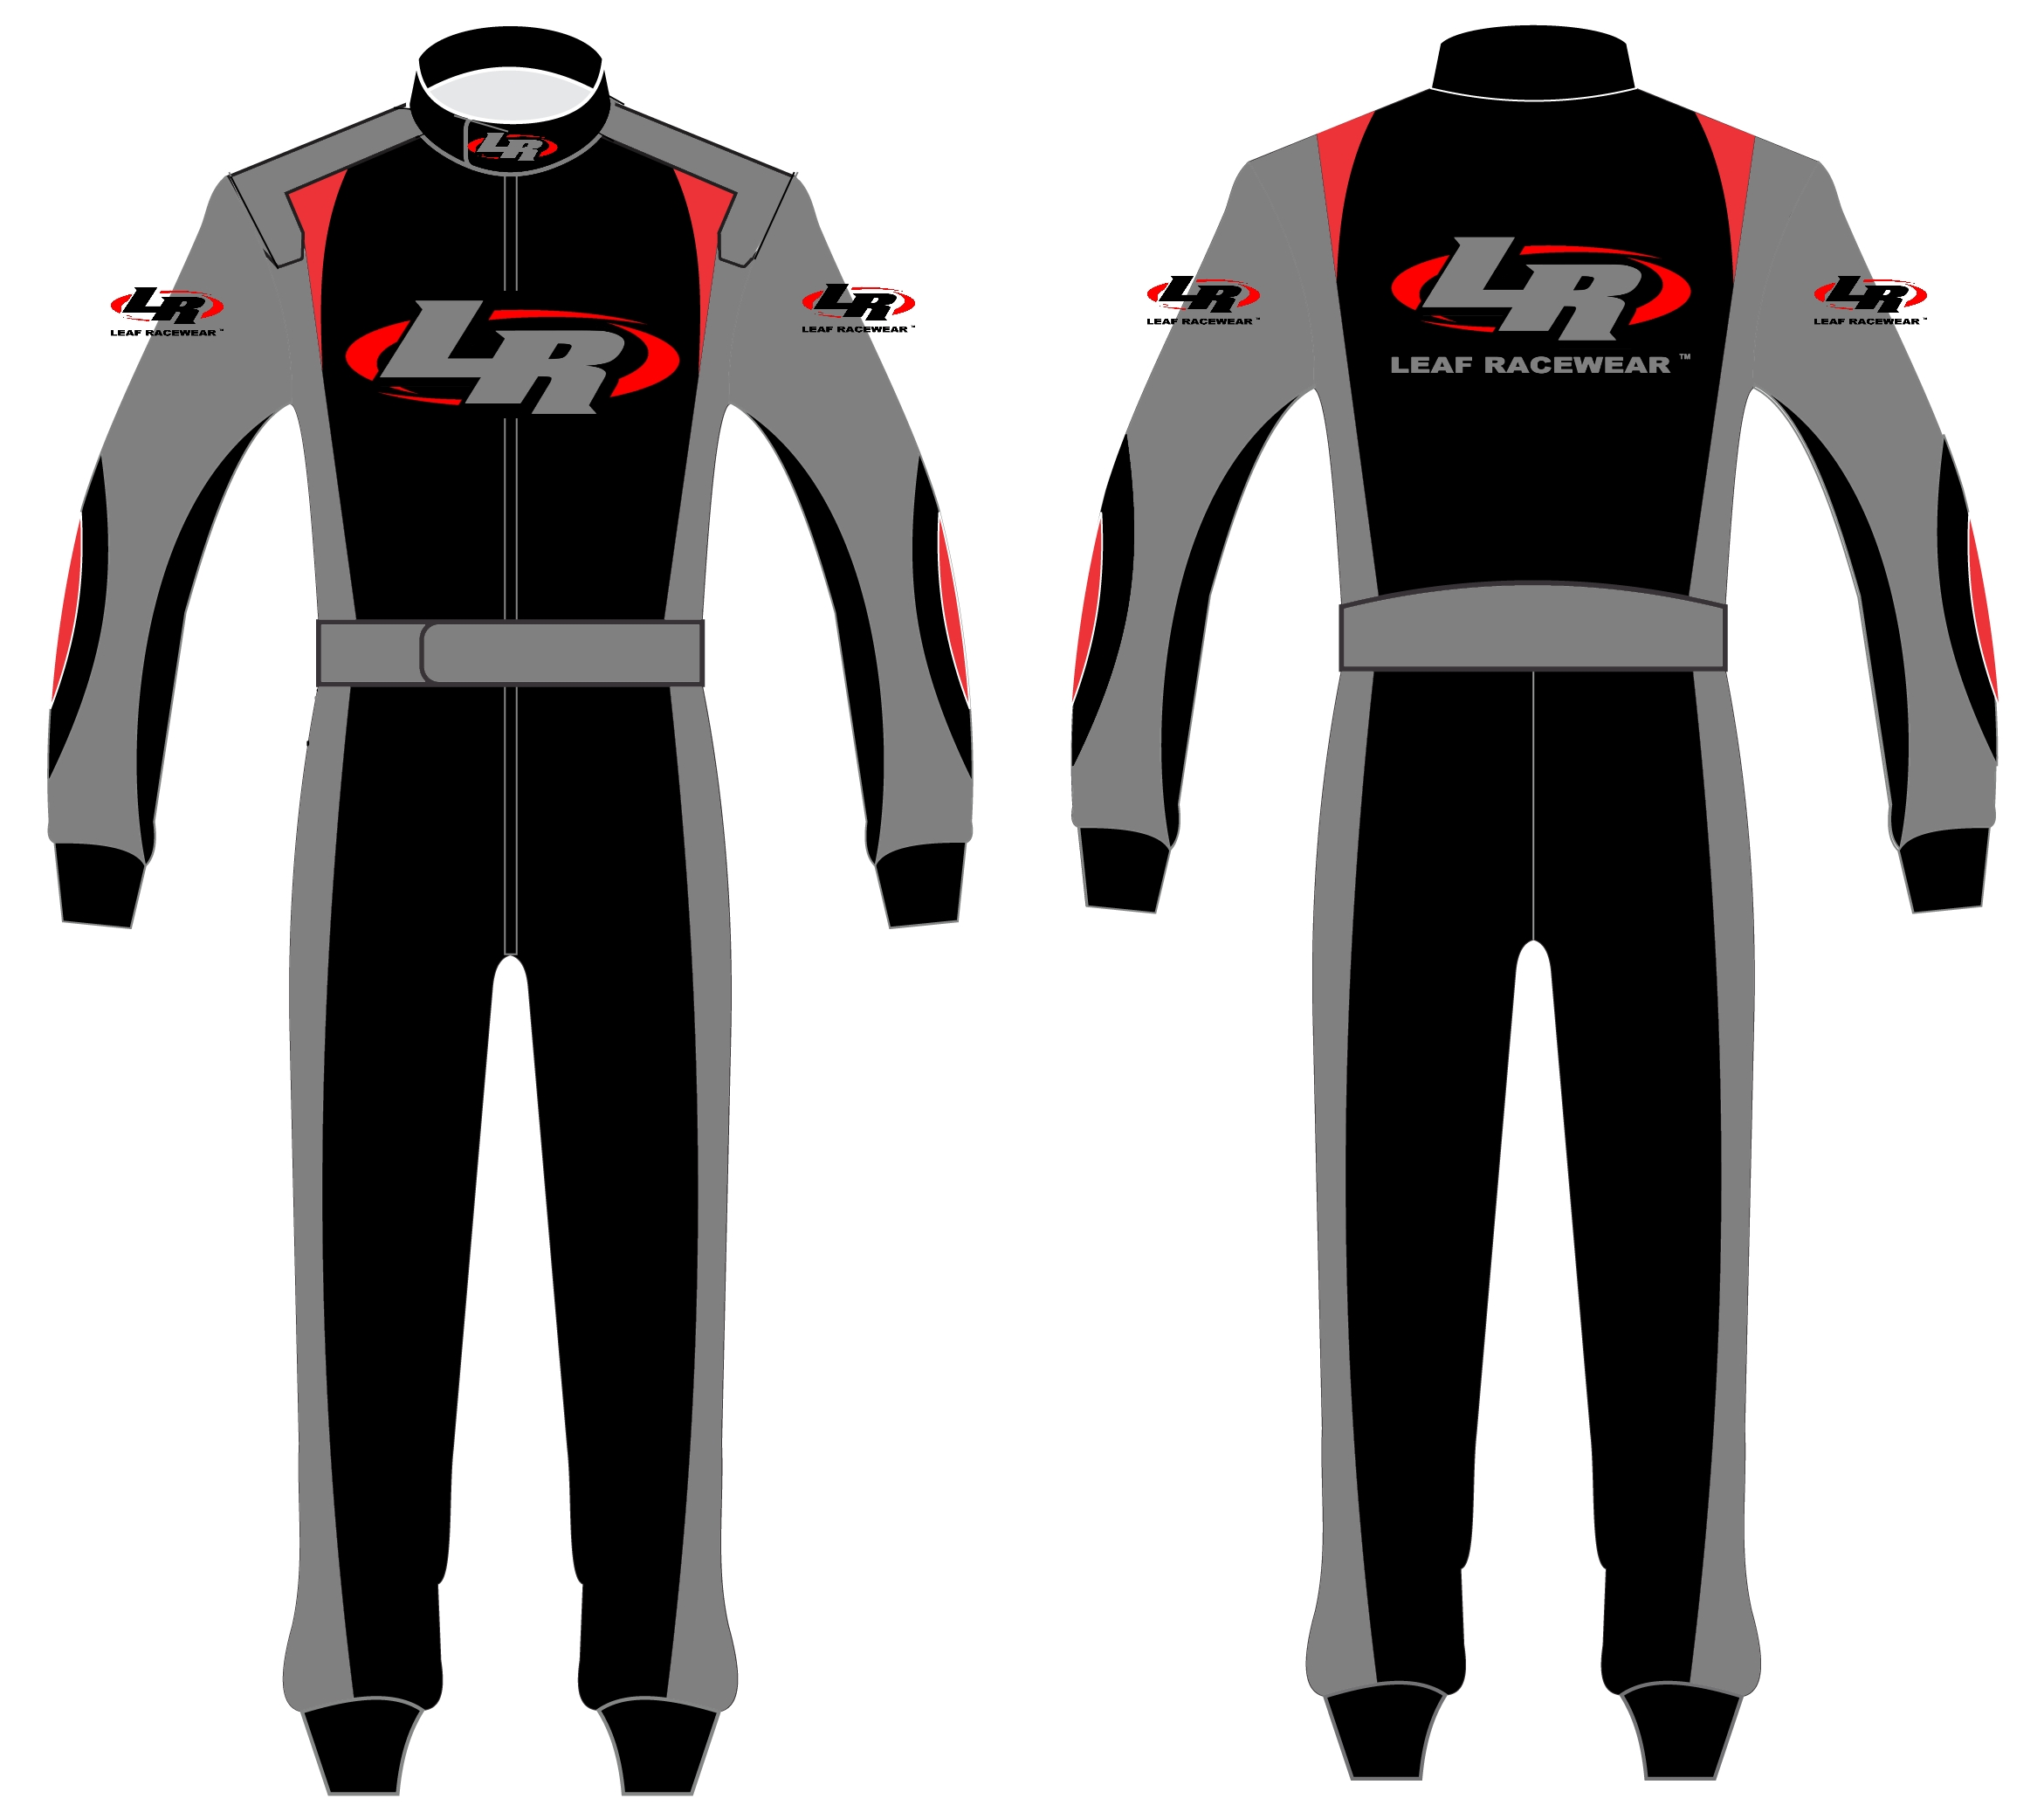 Leaf Racewear Auto Racing Suits Sublimated Crew Shirts And Safety